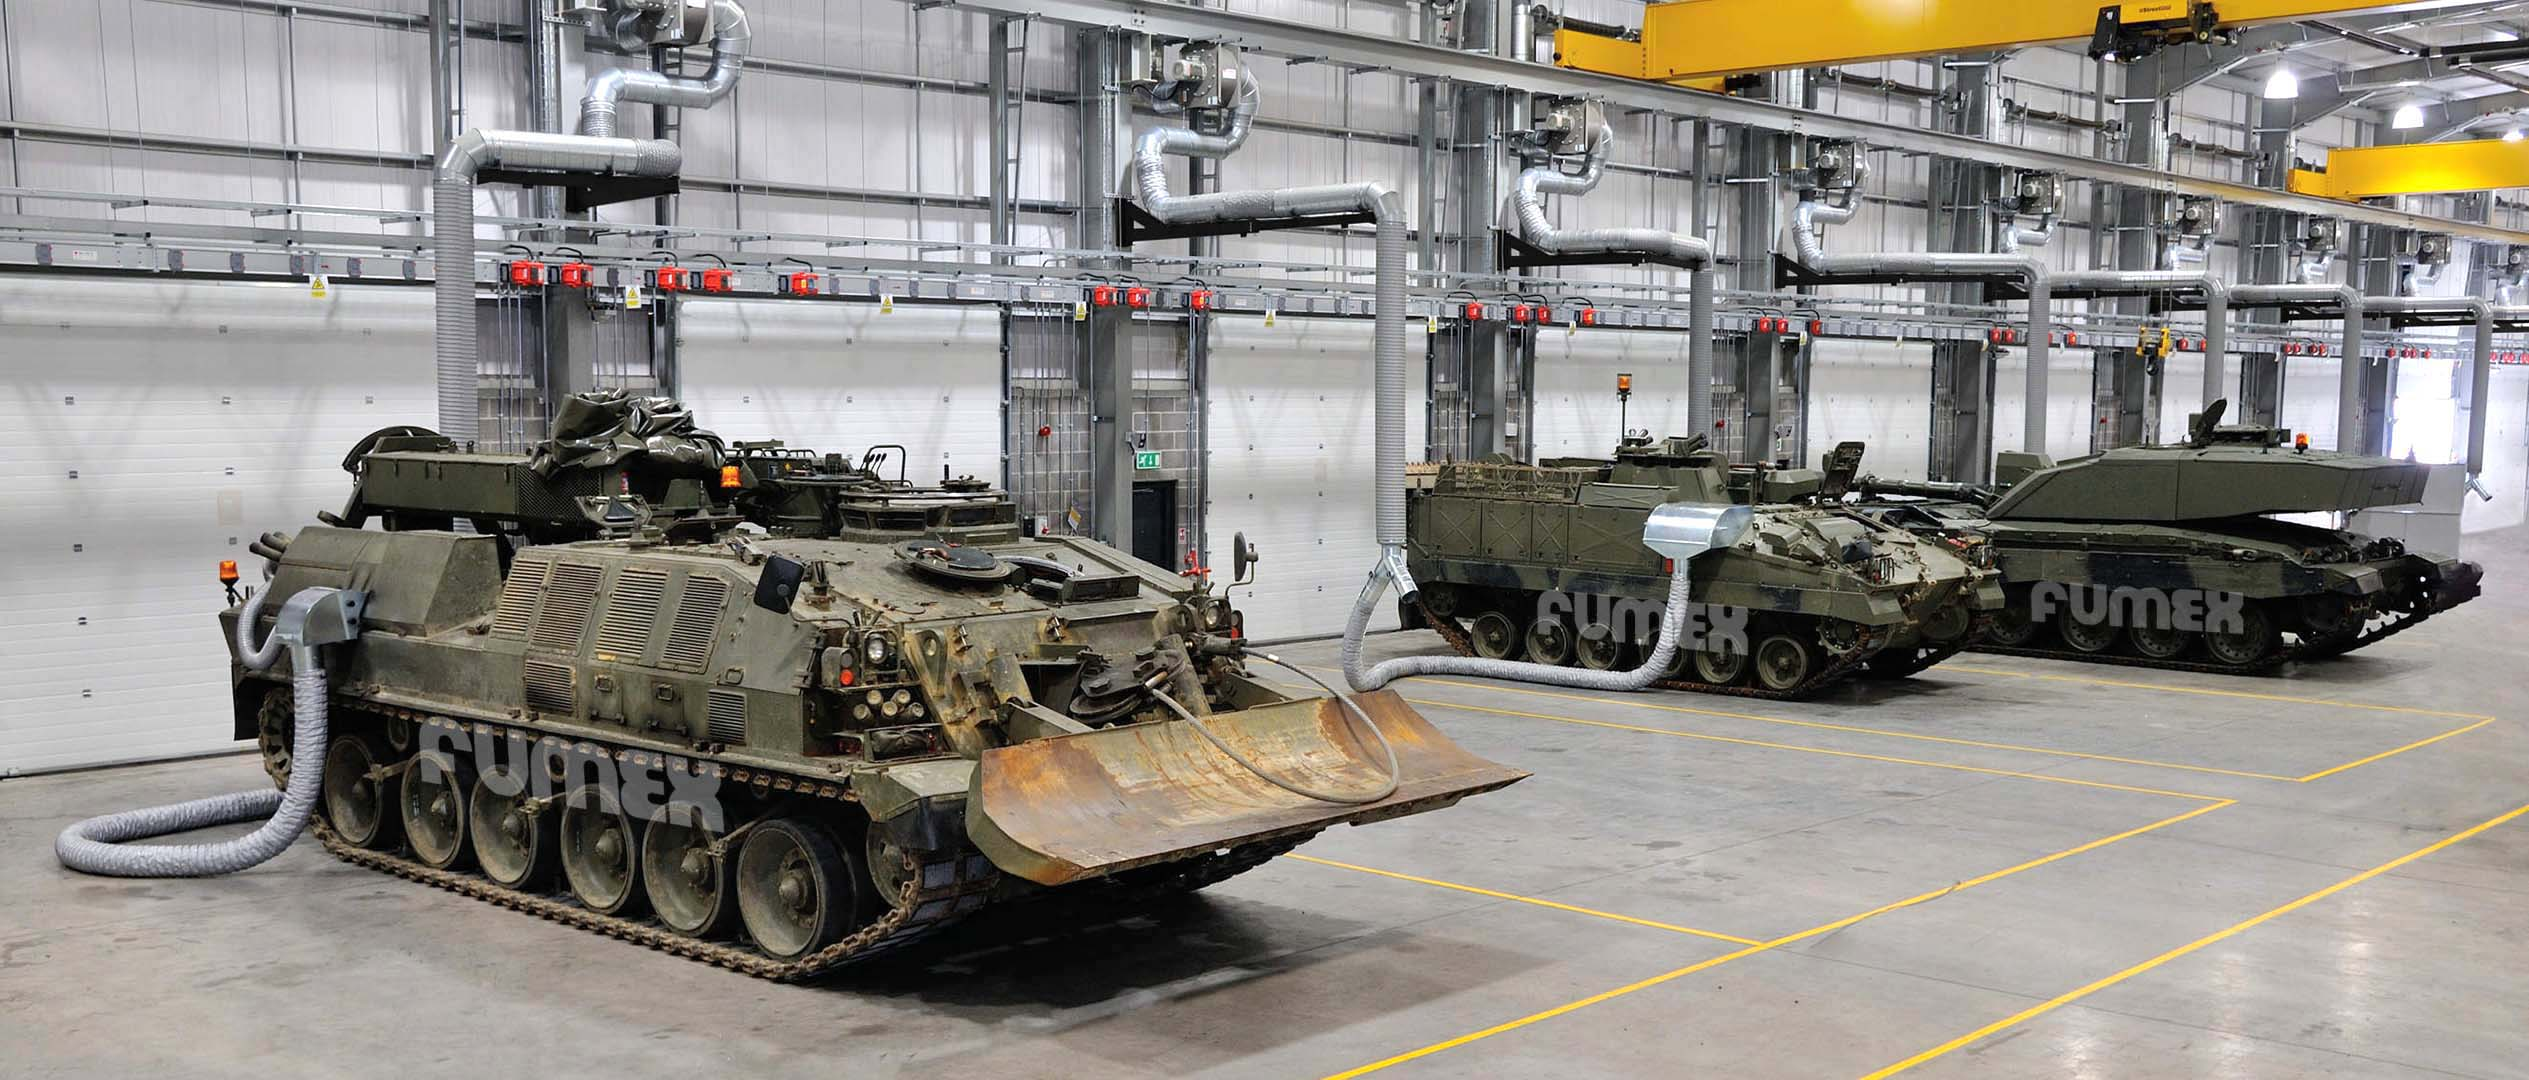 Exhaust Extraction Hoods for Military Vehicles